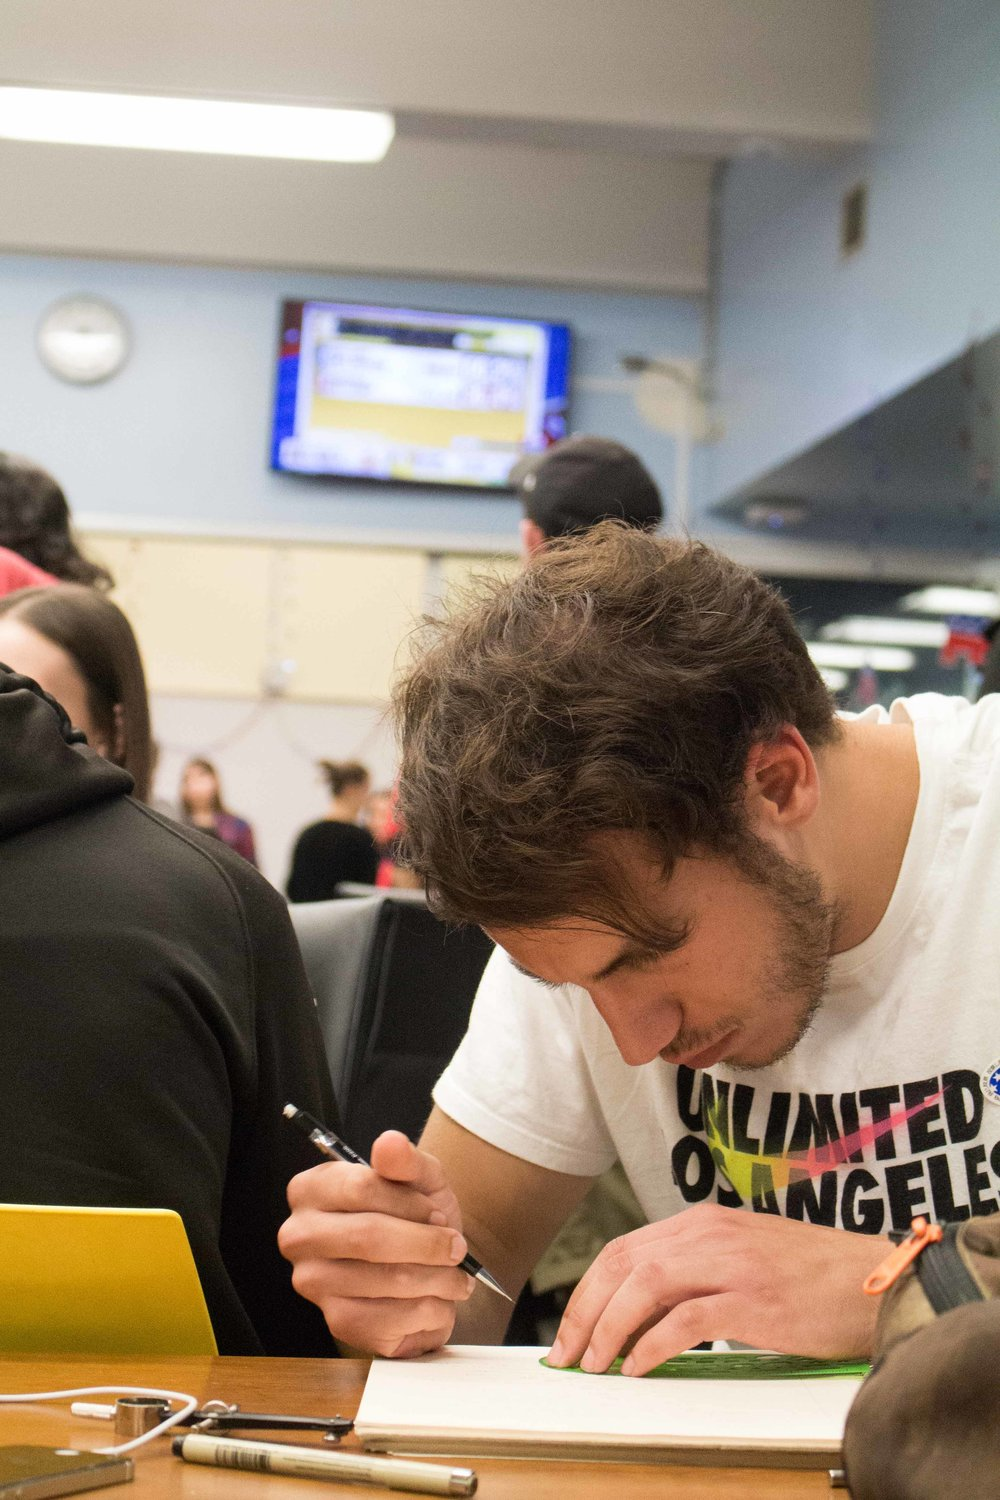 Sascha Martinelli studies astrophysics while watching the presidential election results at the 2016 presidential election result viewing party in the Cayton Center in the Santa Monica College campus in Santa Monica, Calif on Tuesday, Nov 9, 2016.